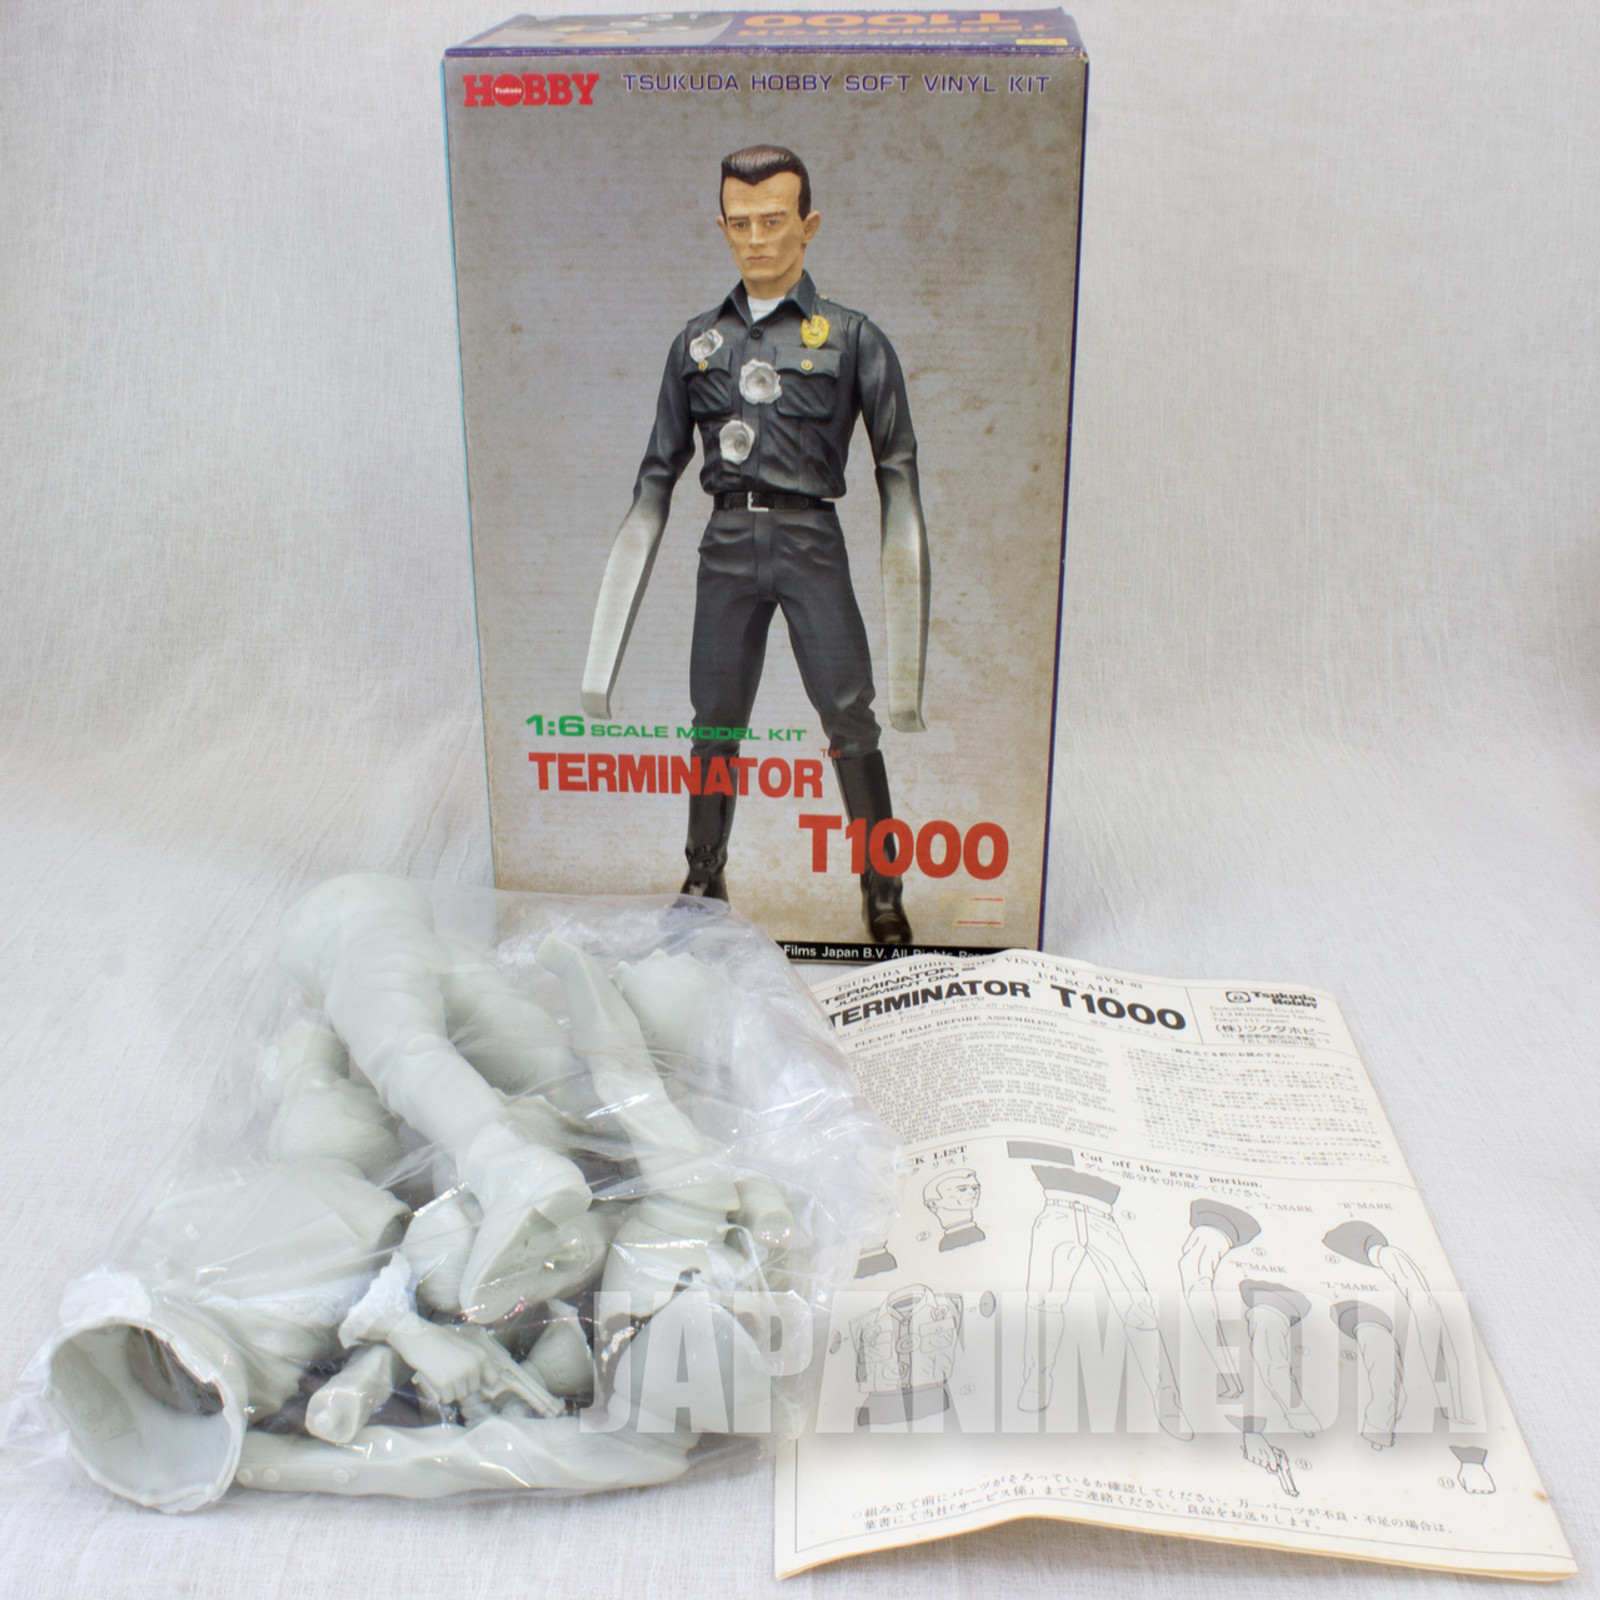 Terminator T1000 1/6 Scale Soft Vinyl Model Kit Tsukuda Hobby JAPAN